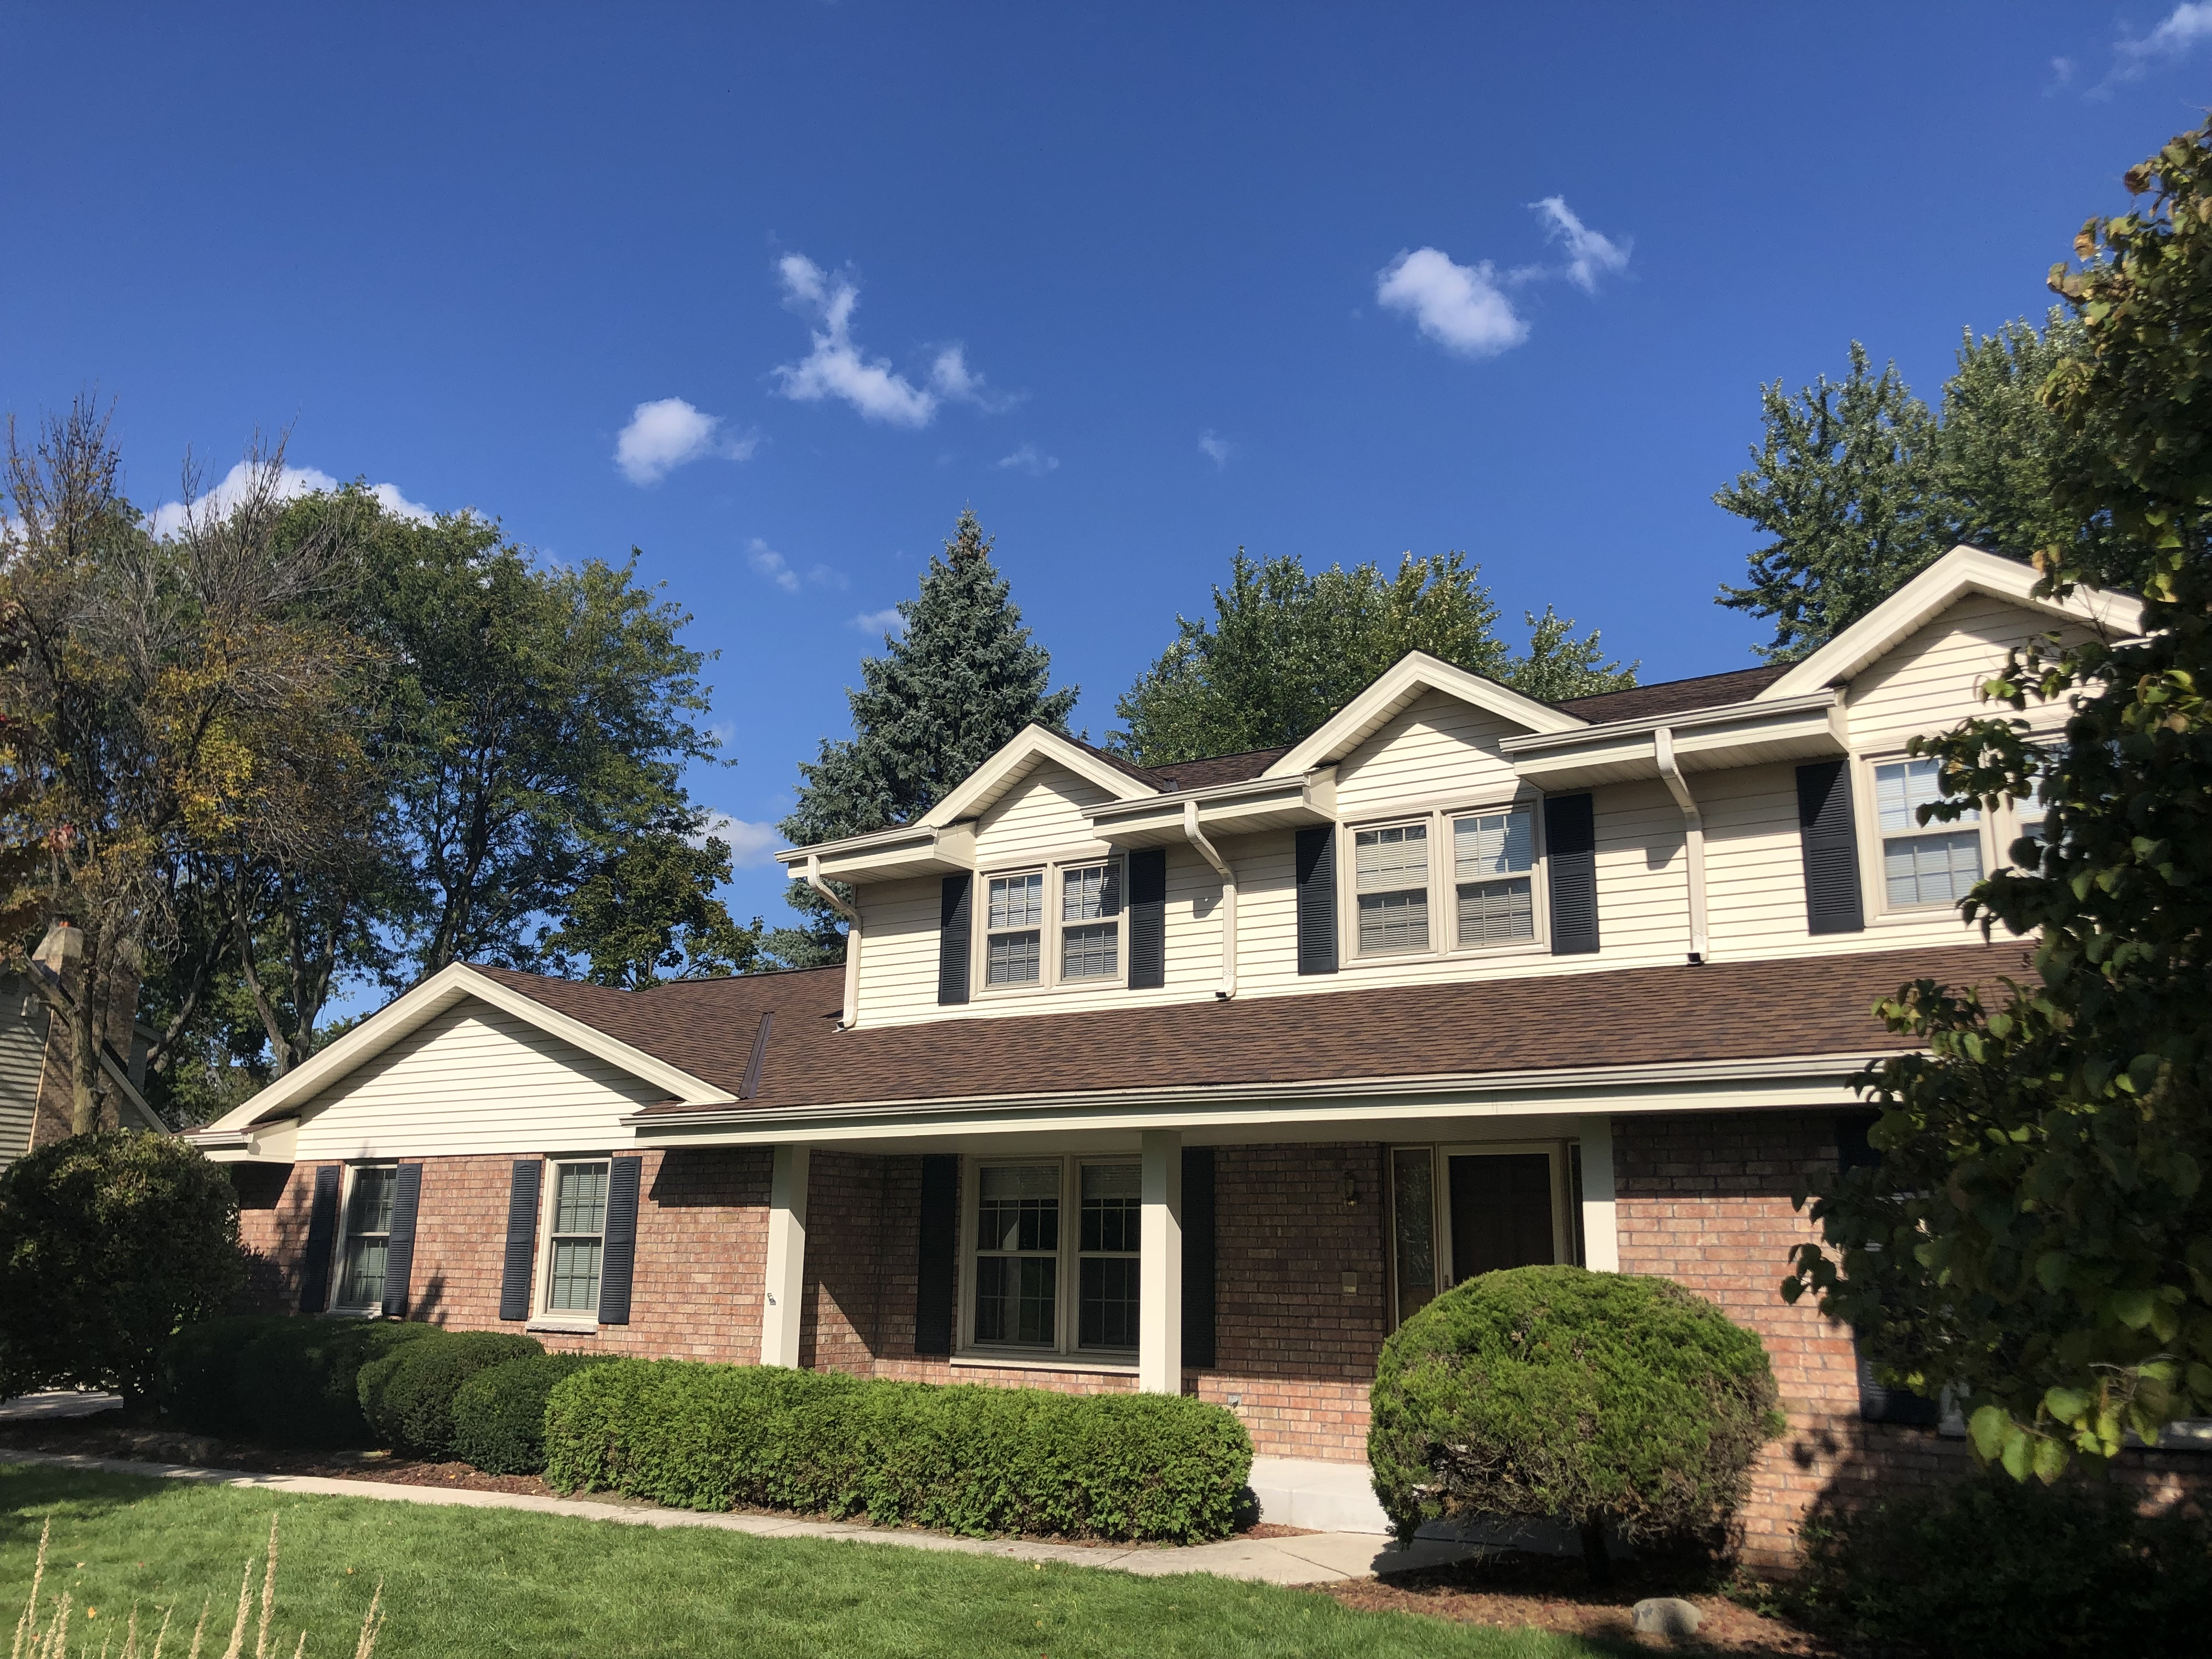 Wisconsin Roofing LLC | Brookfield | Upgraded Ventilation Unblocked Soffit Vents | Baffled Intake Chutes | CertainTeed Landmark Burnt Sienna Shingles | Side